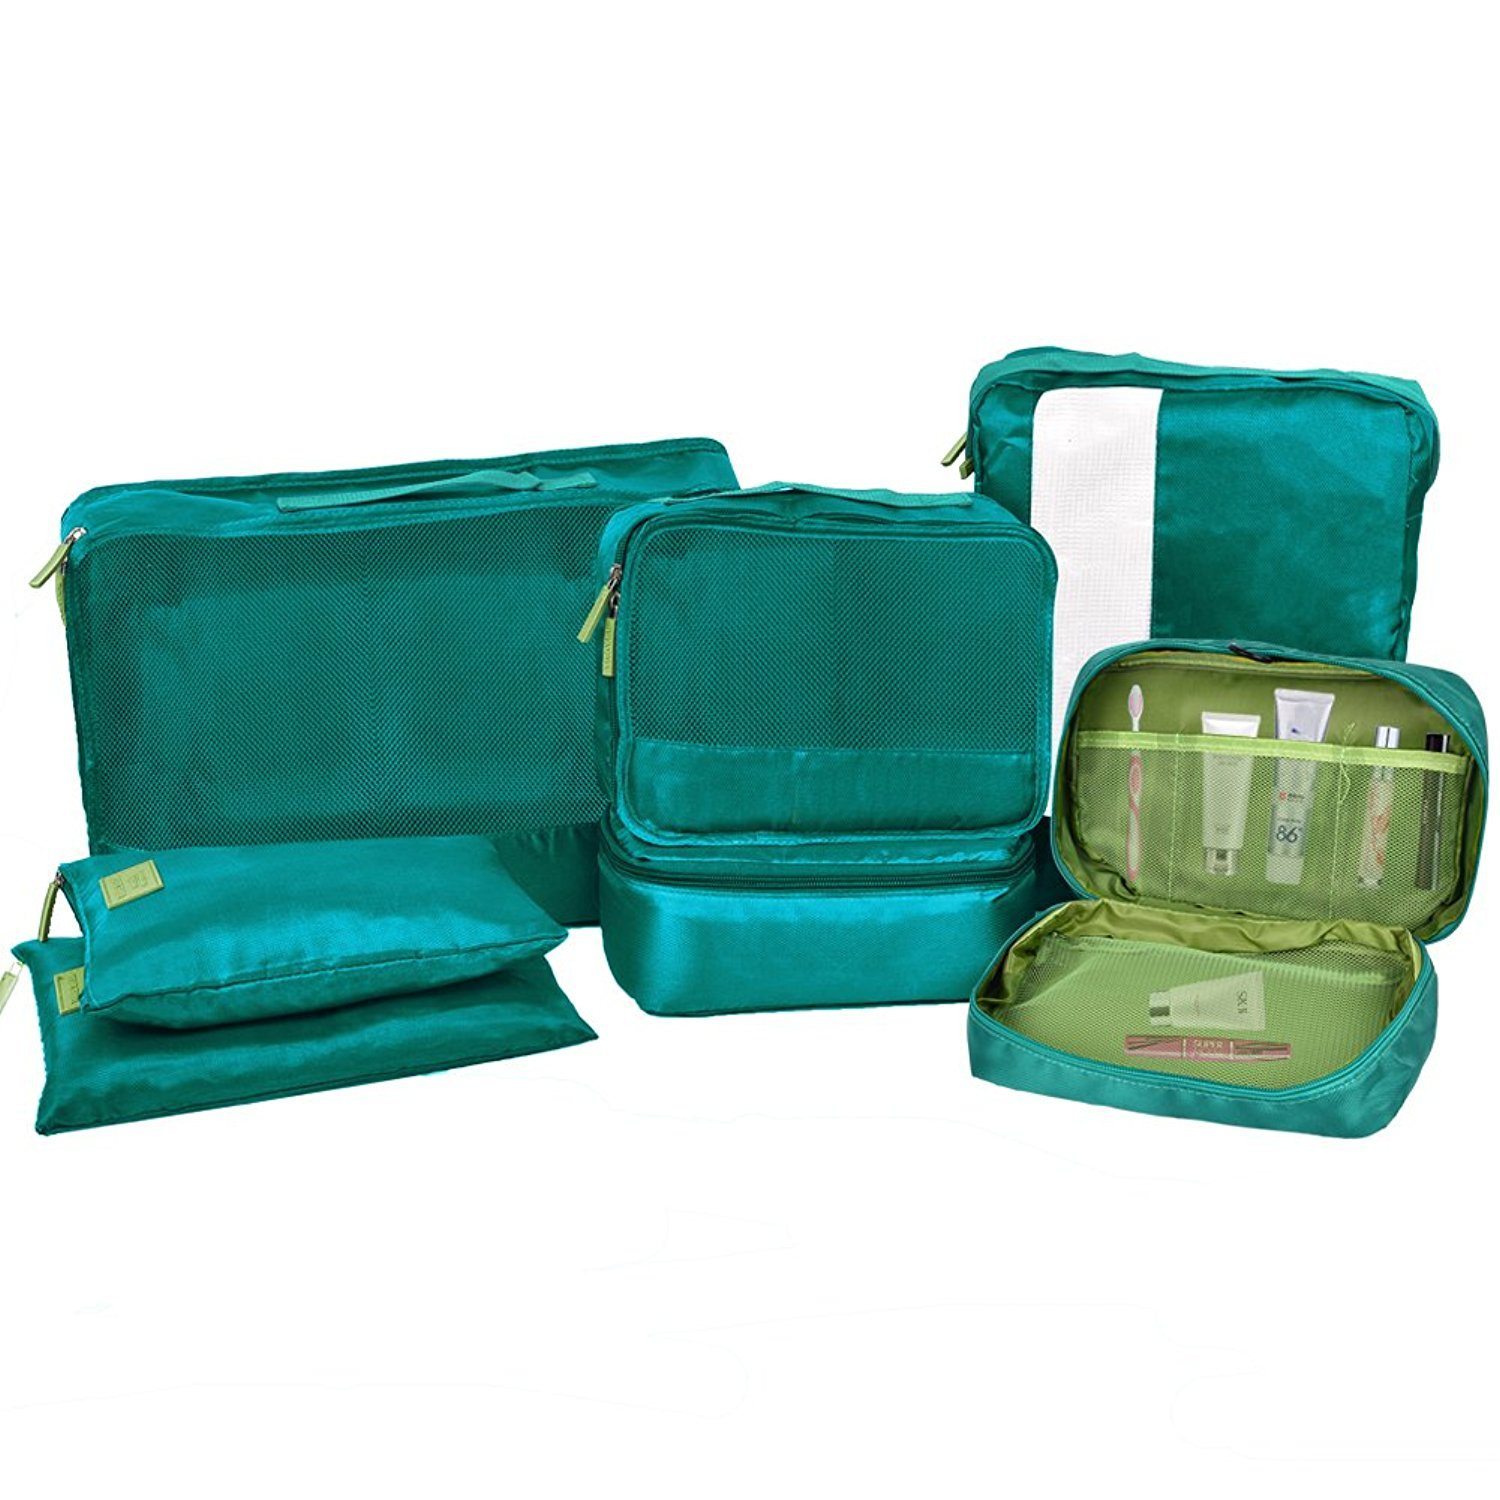 Packing Cells Cheap Luggage Packing Cells Find Luggage Packing Cells Deals On